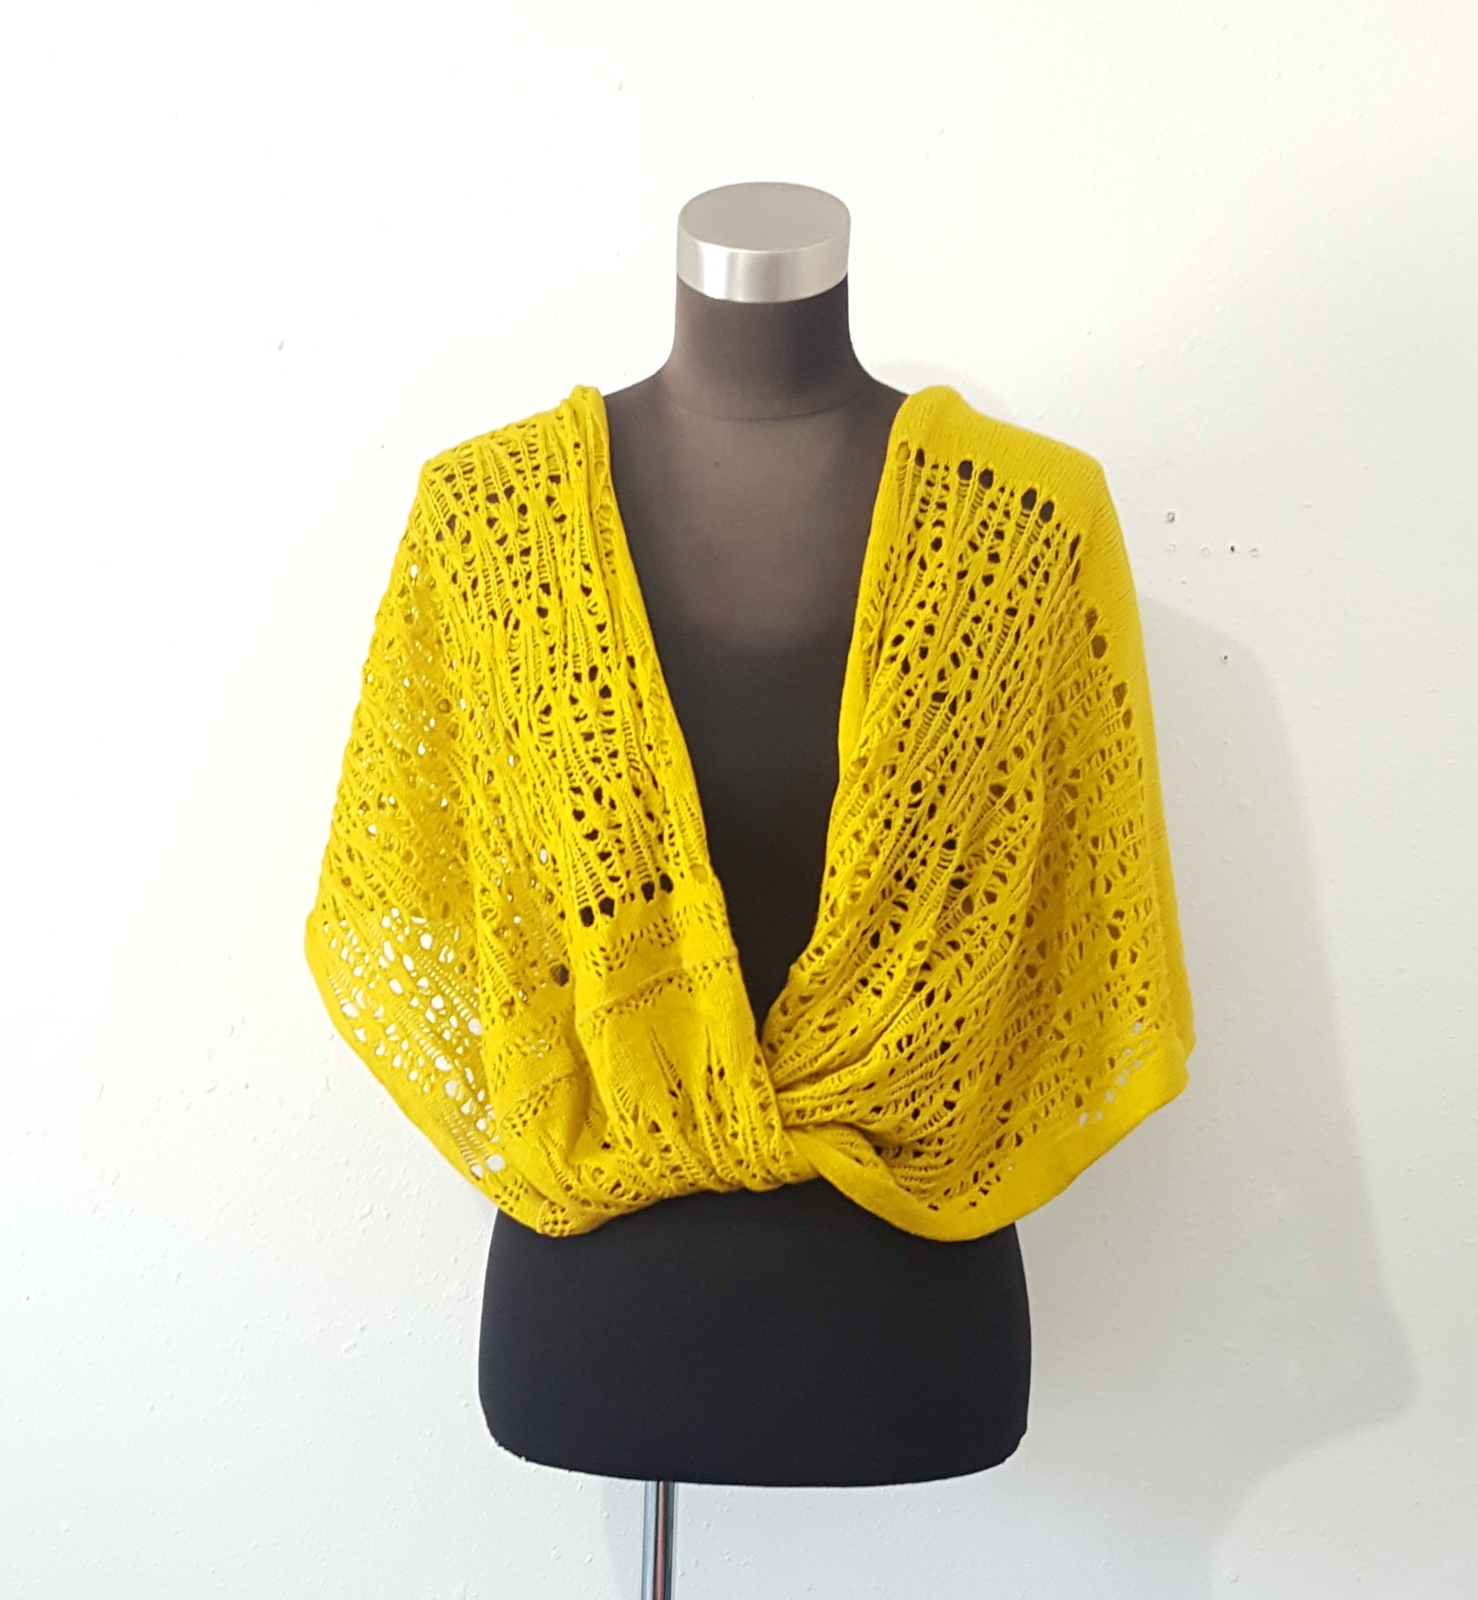 Primary image for Twisted Crochet Infinity Scarf Shoulder Wrap Ruana Mustard Yellow One Size